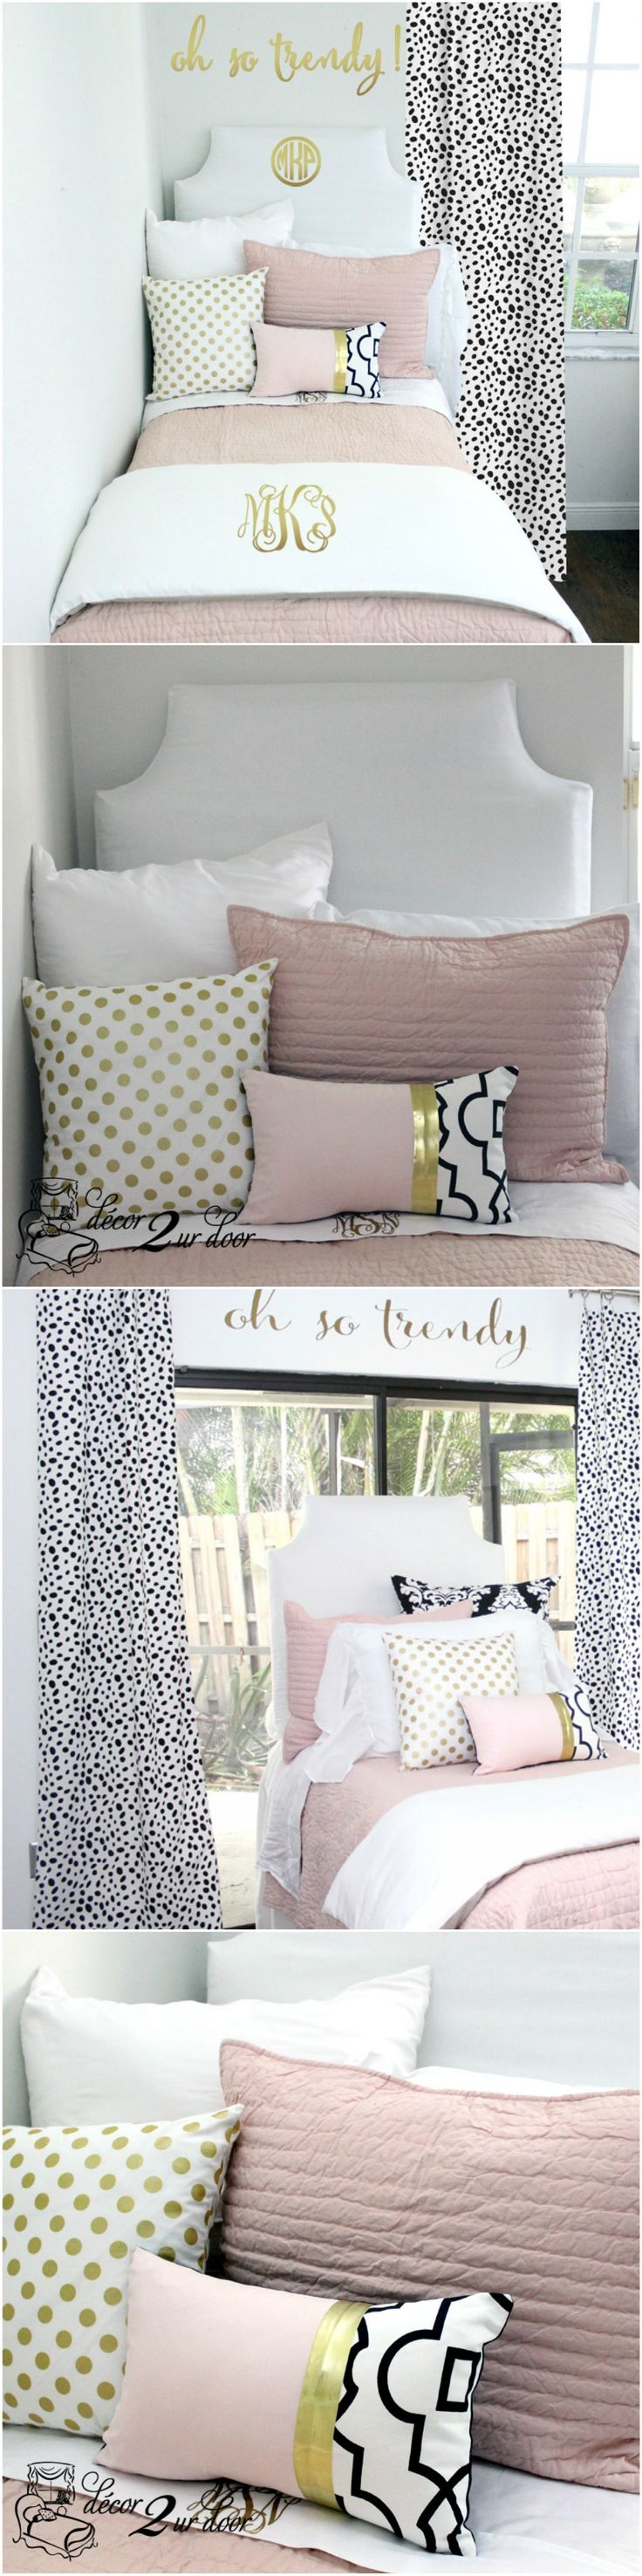 dorm room furniture ideas. blush pink white u0026 a pop of black designer dorm bedding set room furniture ideas p